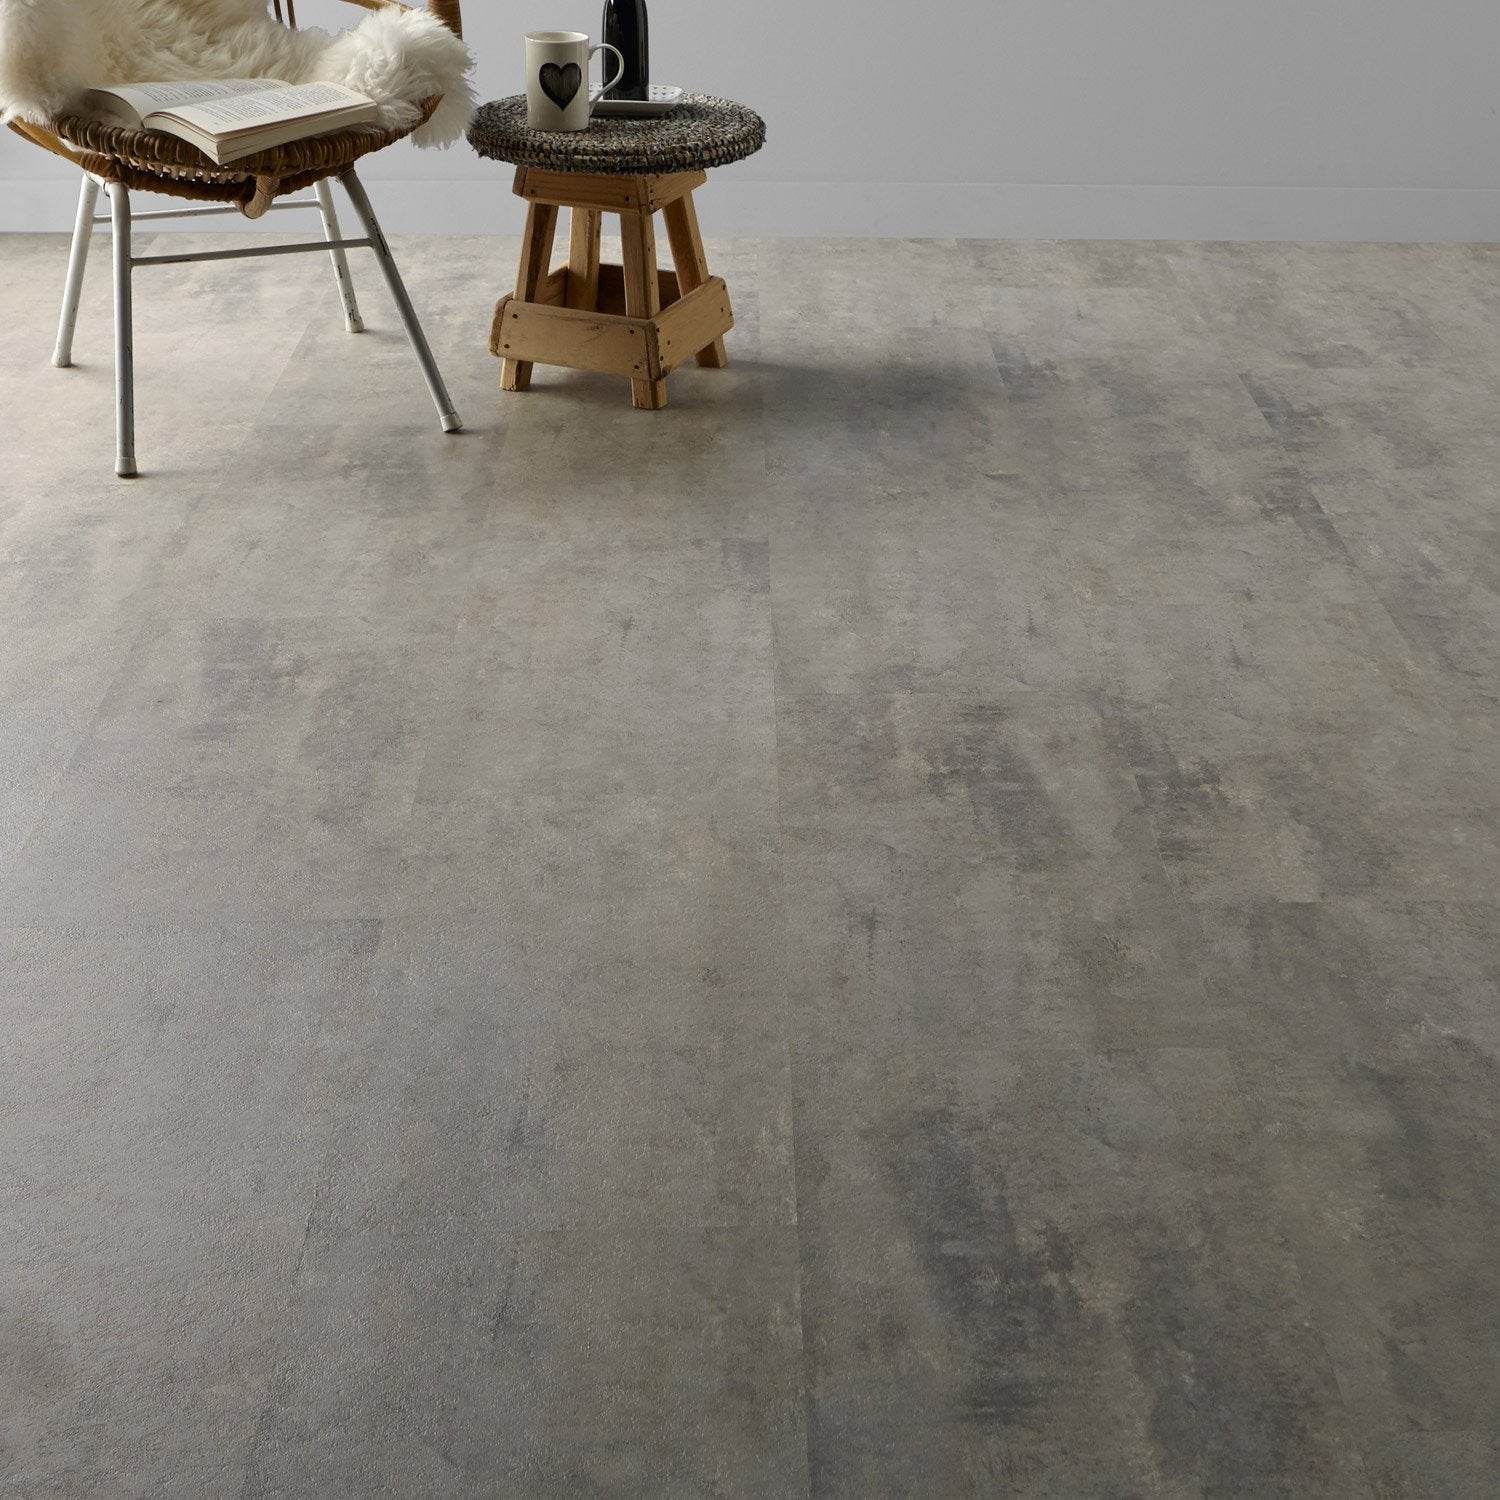 Dalle pvc clipsable gris soft grey clic gerflor leroy merlin - Dalle pvc leroy merlin ...